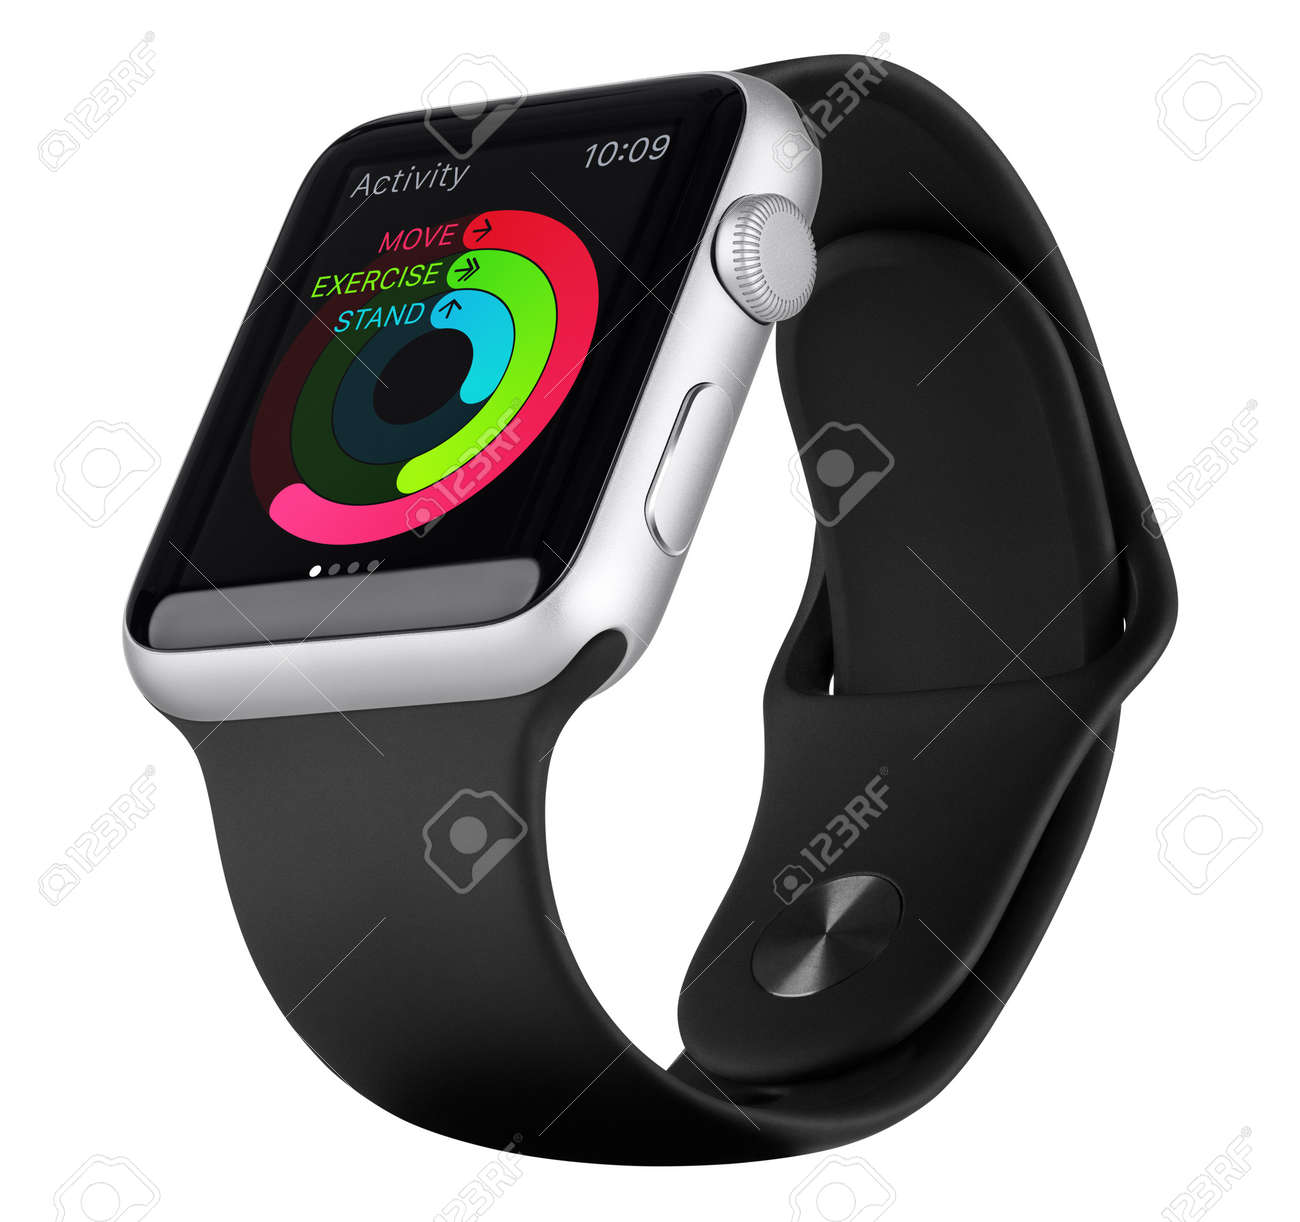 Varna, Bulgaria - October 18, 2015: Apple Watch Sport 42mm Silver Aluminum Case with Black Sport Band with activity app on the display. Bottom up view fully in focus. Isolated on white background. - 51147170